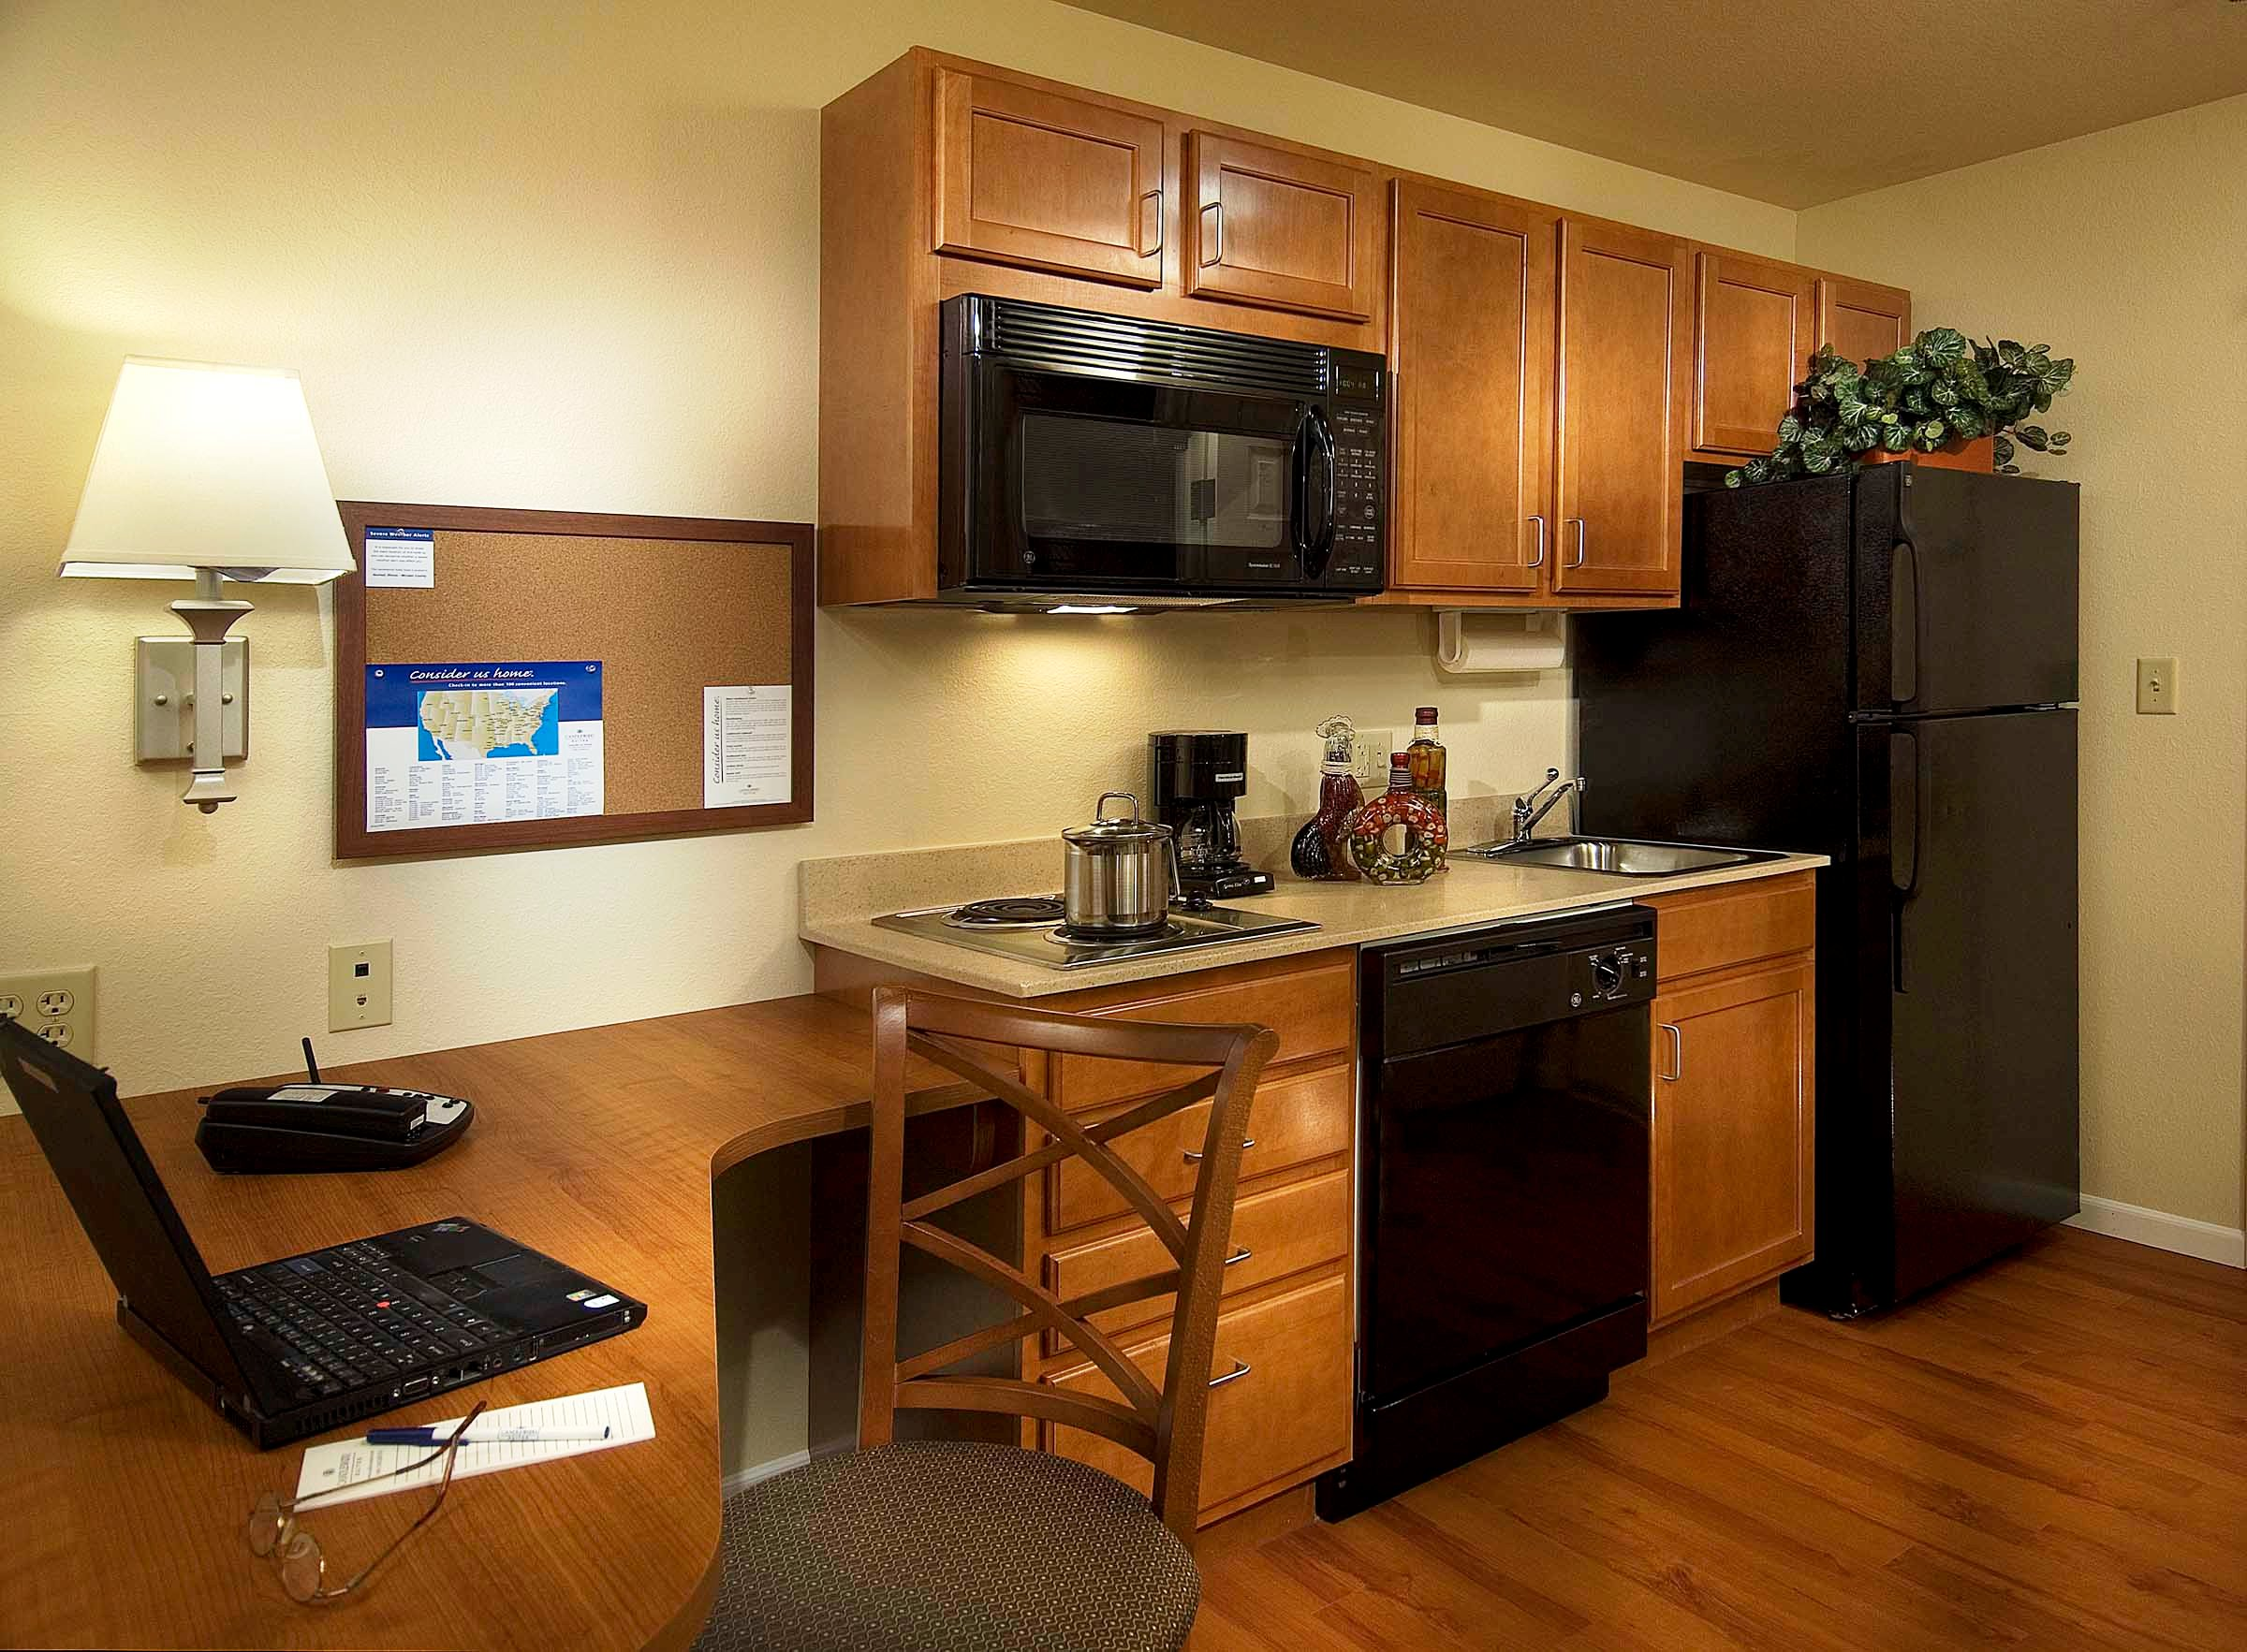 What is an extended stay hotel extended stayer Kitchenette meaning